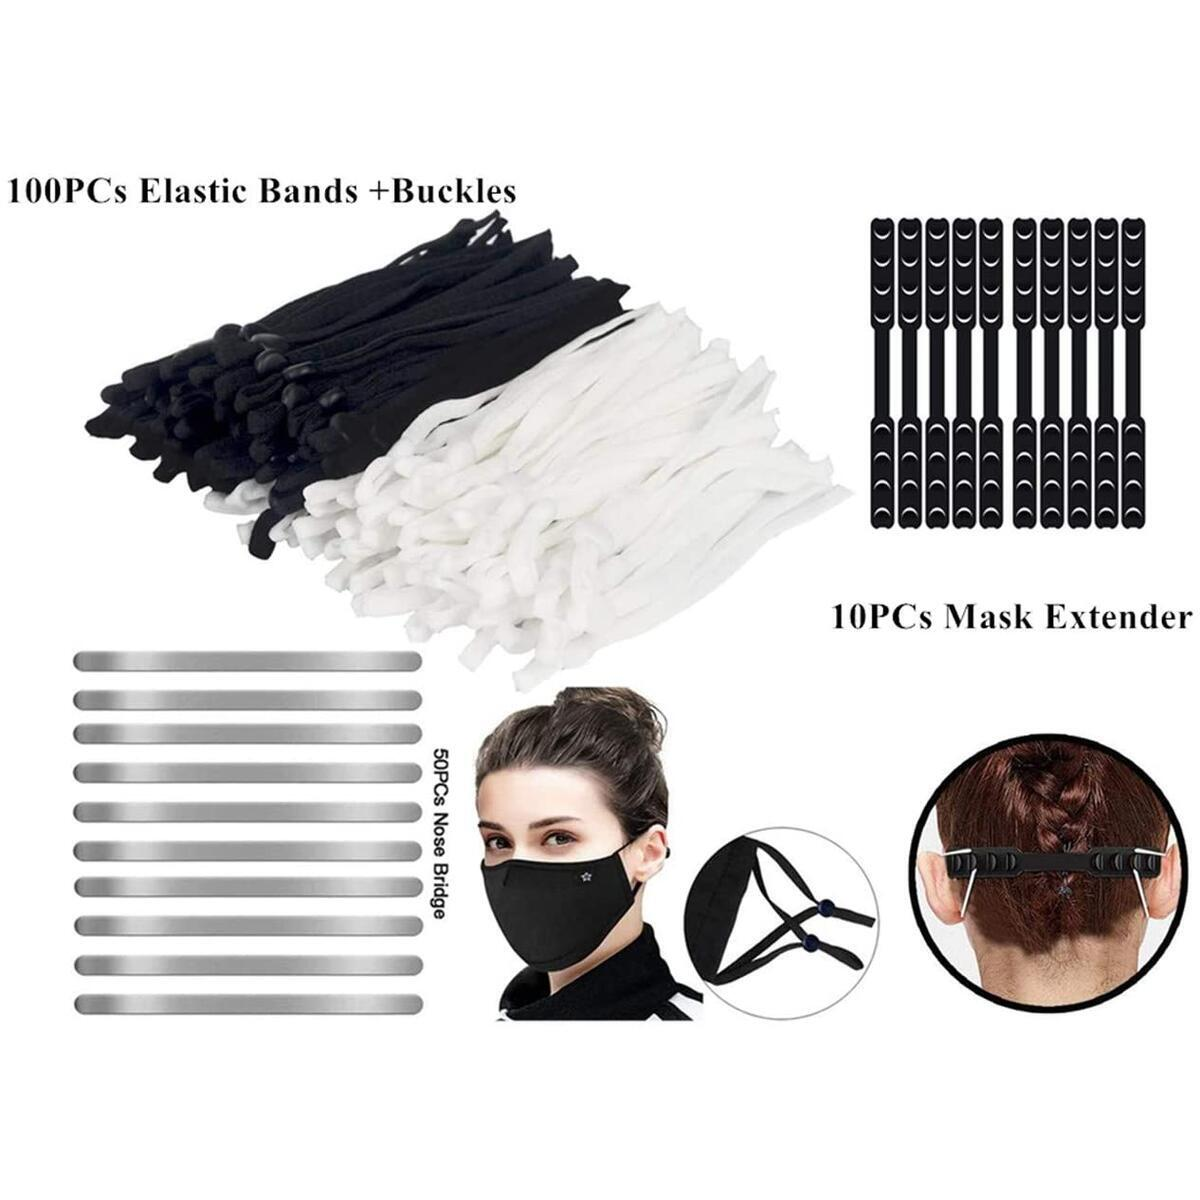 ARGIGU Mask Making Supplies Set, 100 Pieces Elastic Band Cord with Adjustable Buckles, 50 Pieces Nose Bridge Strips, Aluminum Metal Flat Wire Strip for Mask Making Accessories